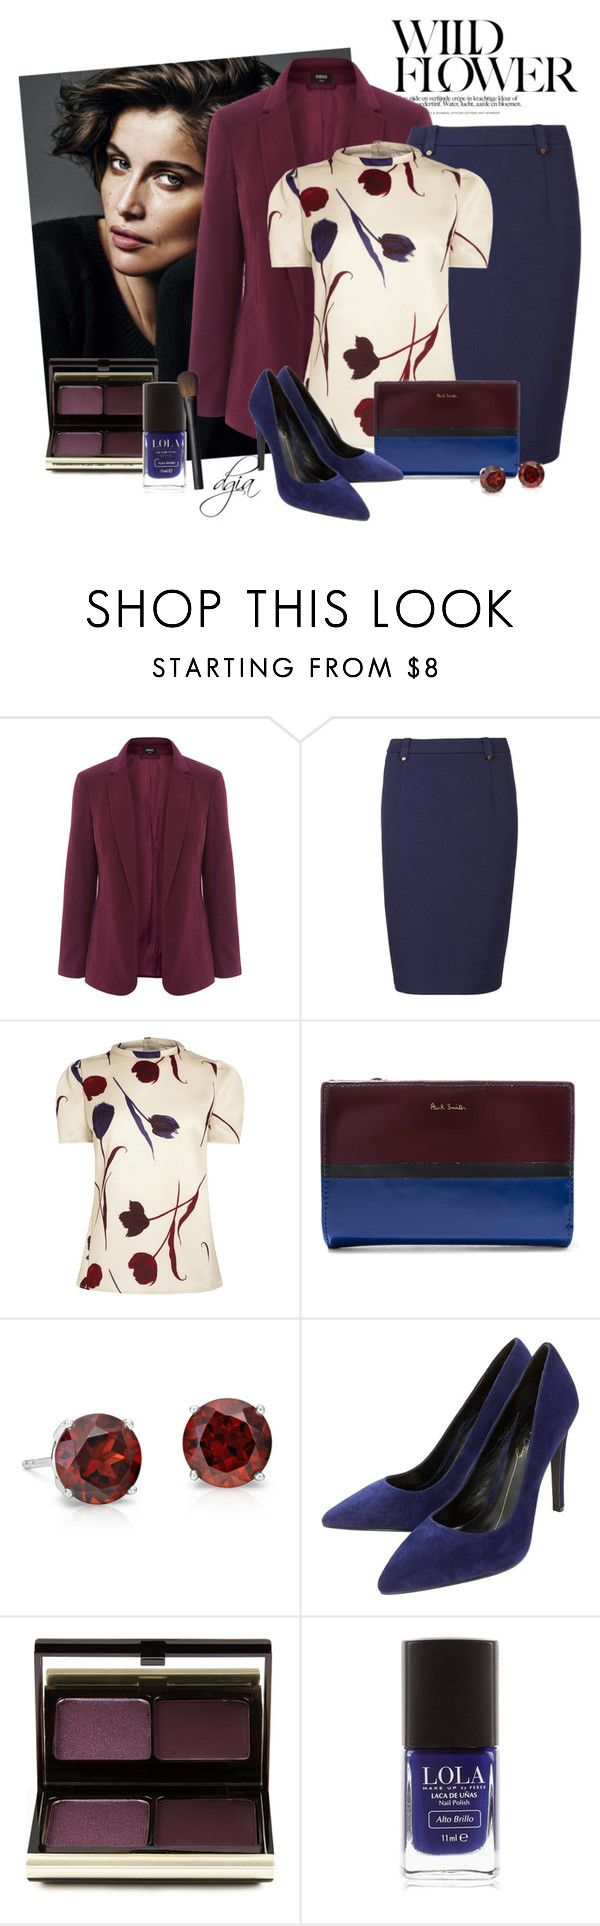 """Wilde flower"" by dgia ❤ liked on Polyvore featuring Oasis, Sugarhill Boutique, Paul Smith, Blue Nile, Lola Cruz, Kevyn Aucoin and NARS Cosmetics"